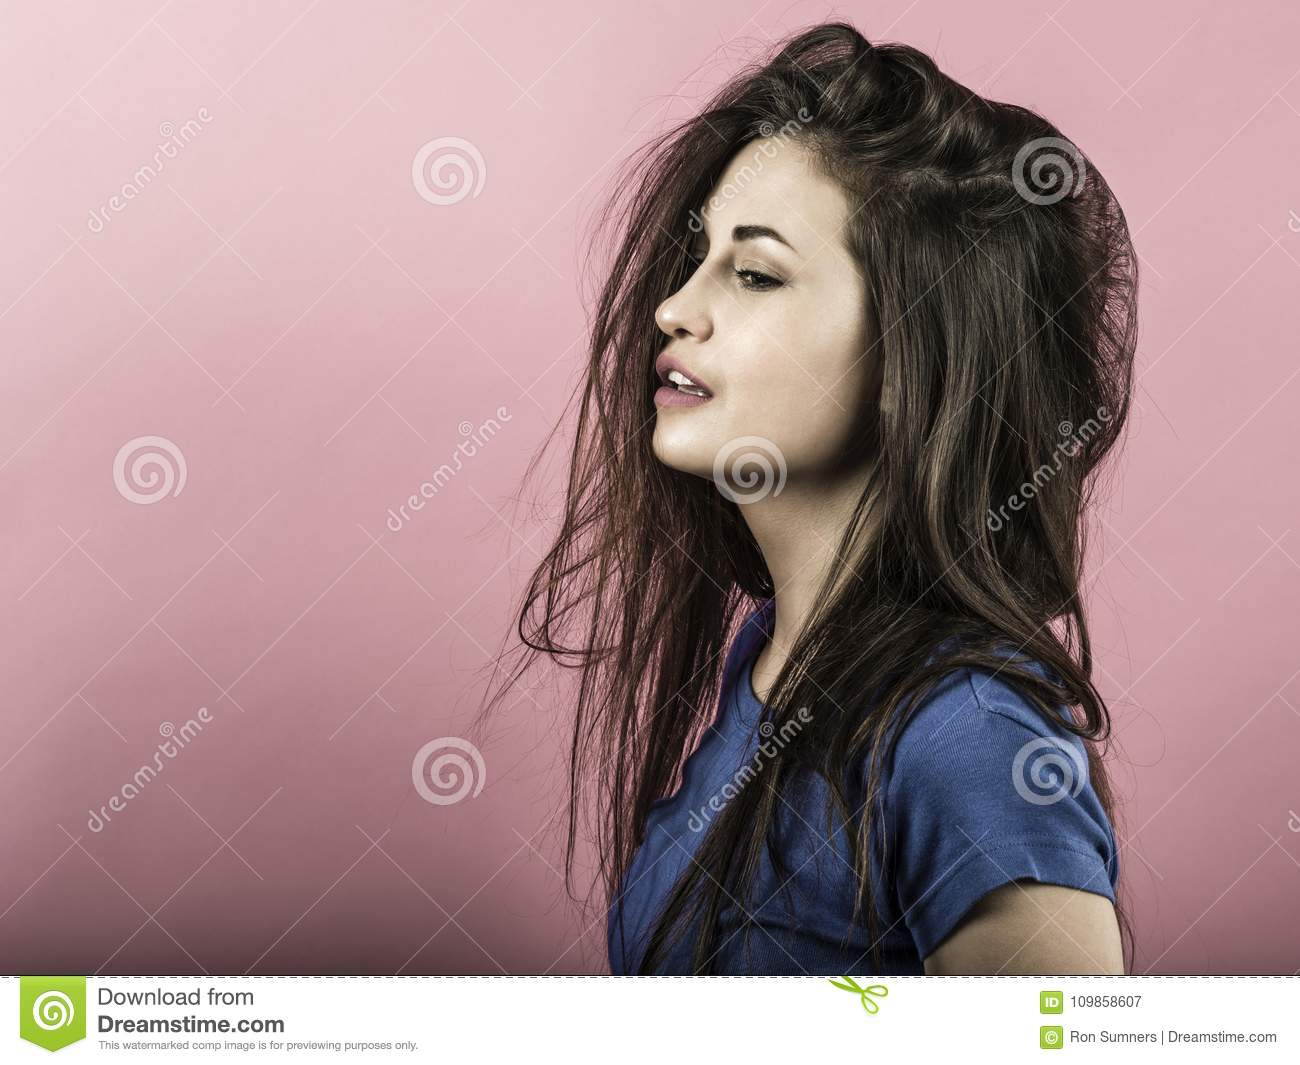 Young woman having bad hair day